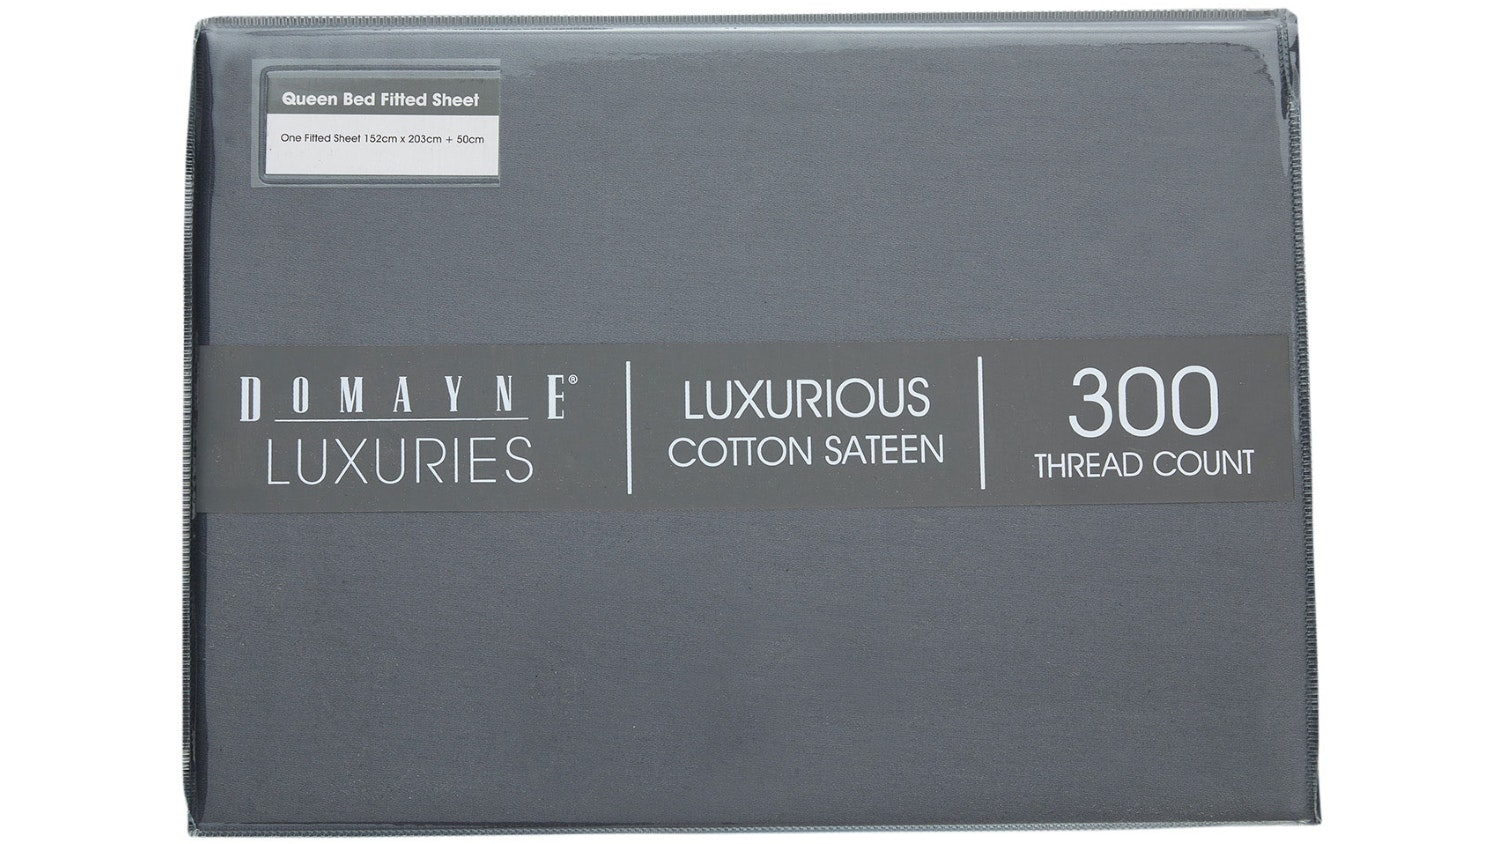 Domayne Luxuries 300TC Fitted Sheet - Steel Grey